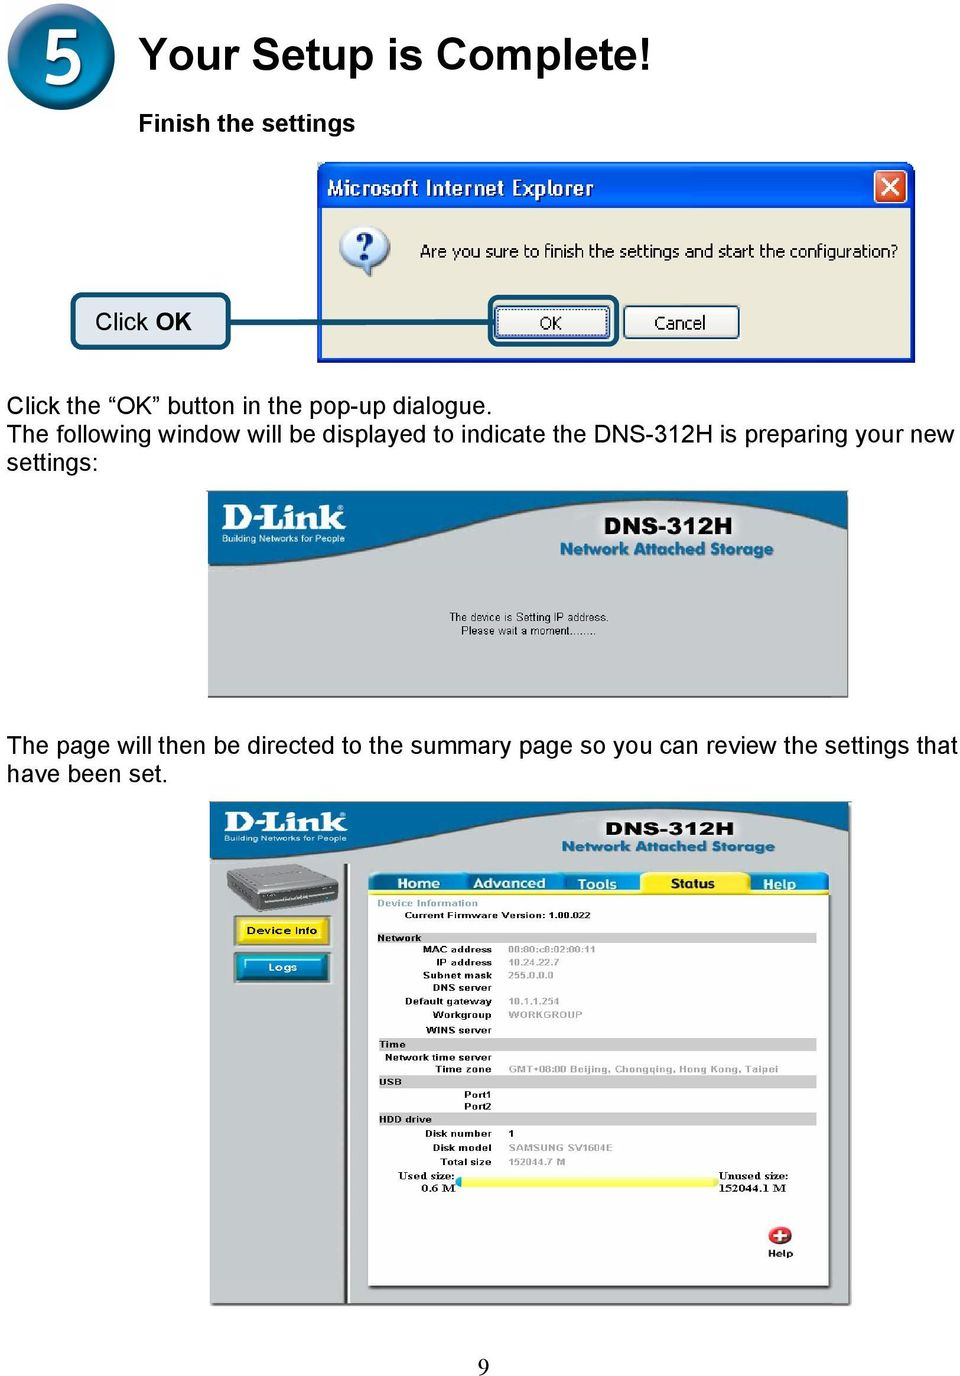 The following window will be displayed to indicate the DNS-312H is